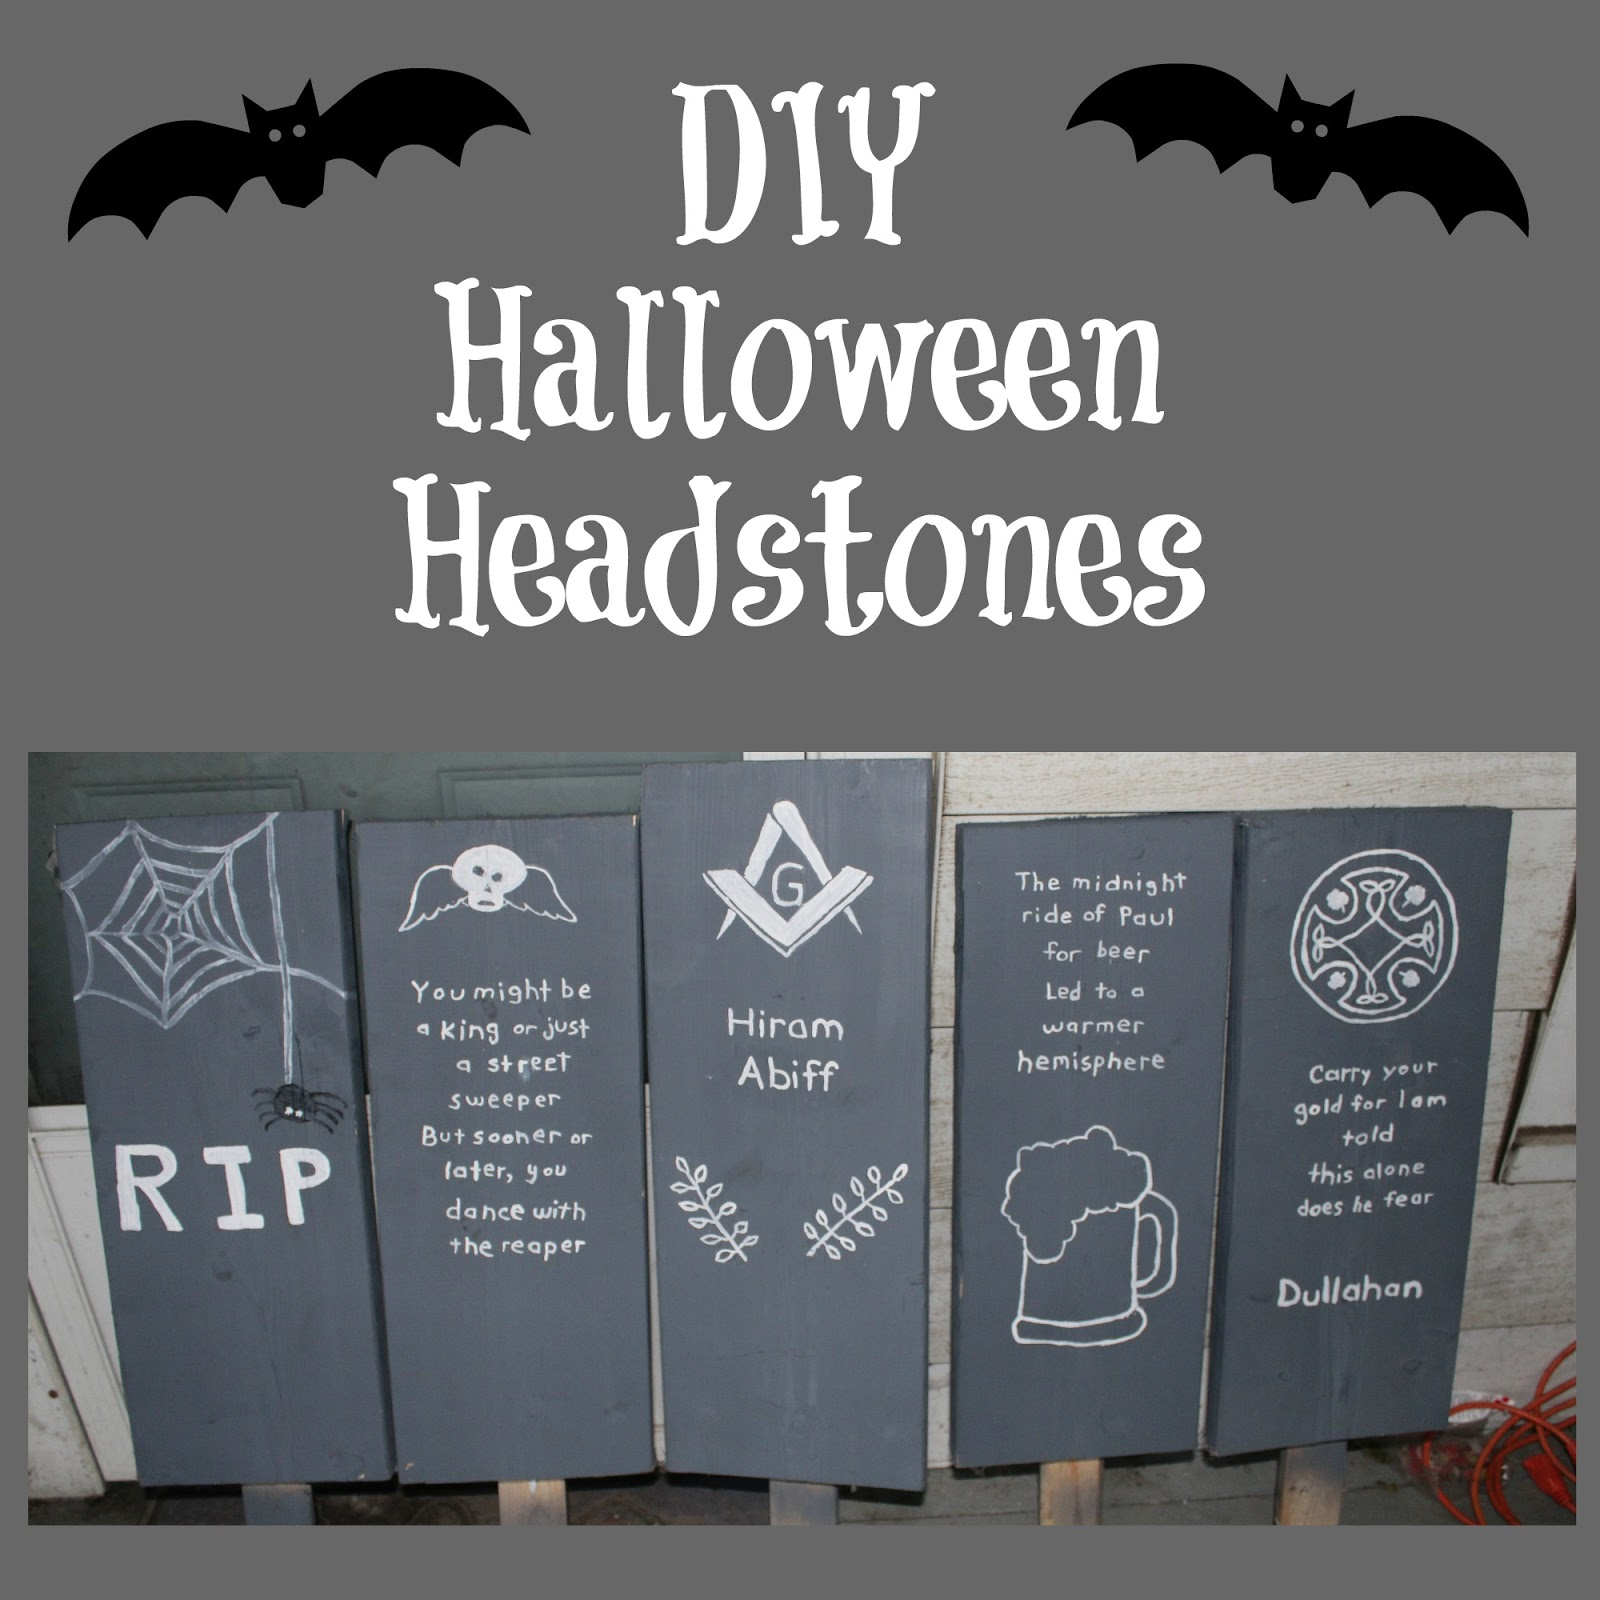 diy halloween headstones - the (mis)adventures of a homesteadin' mama